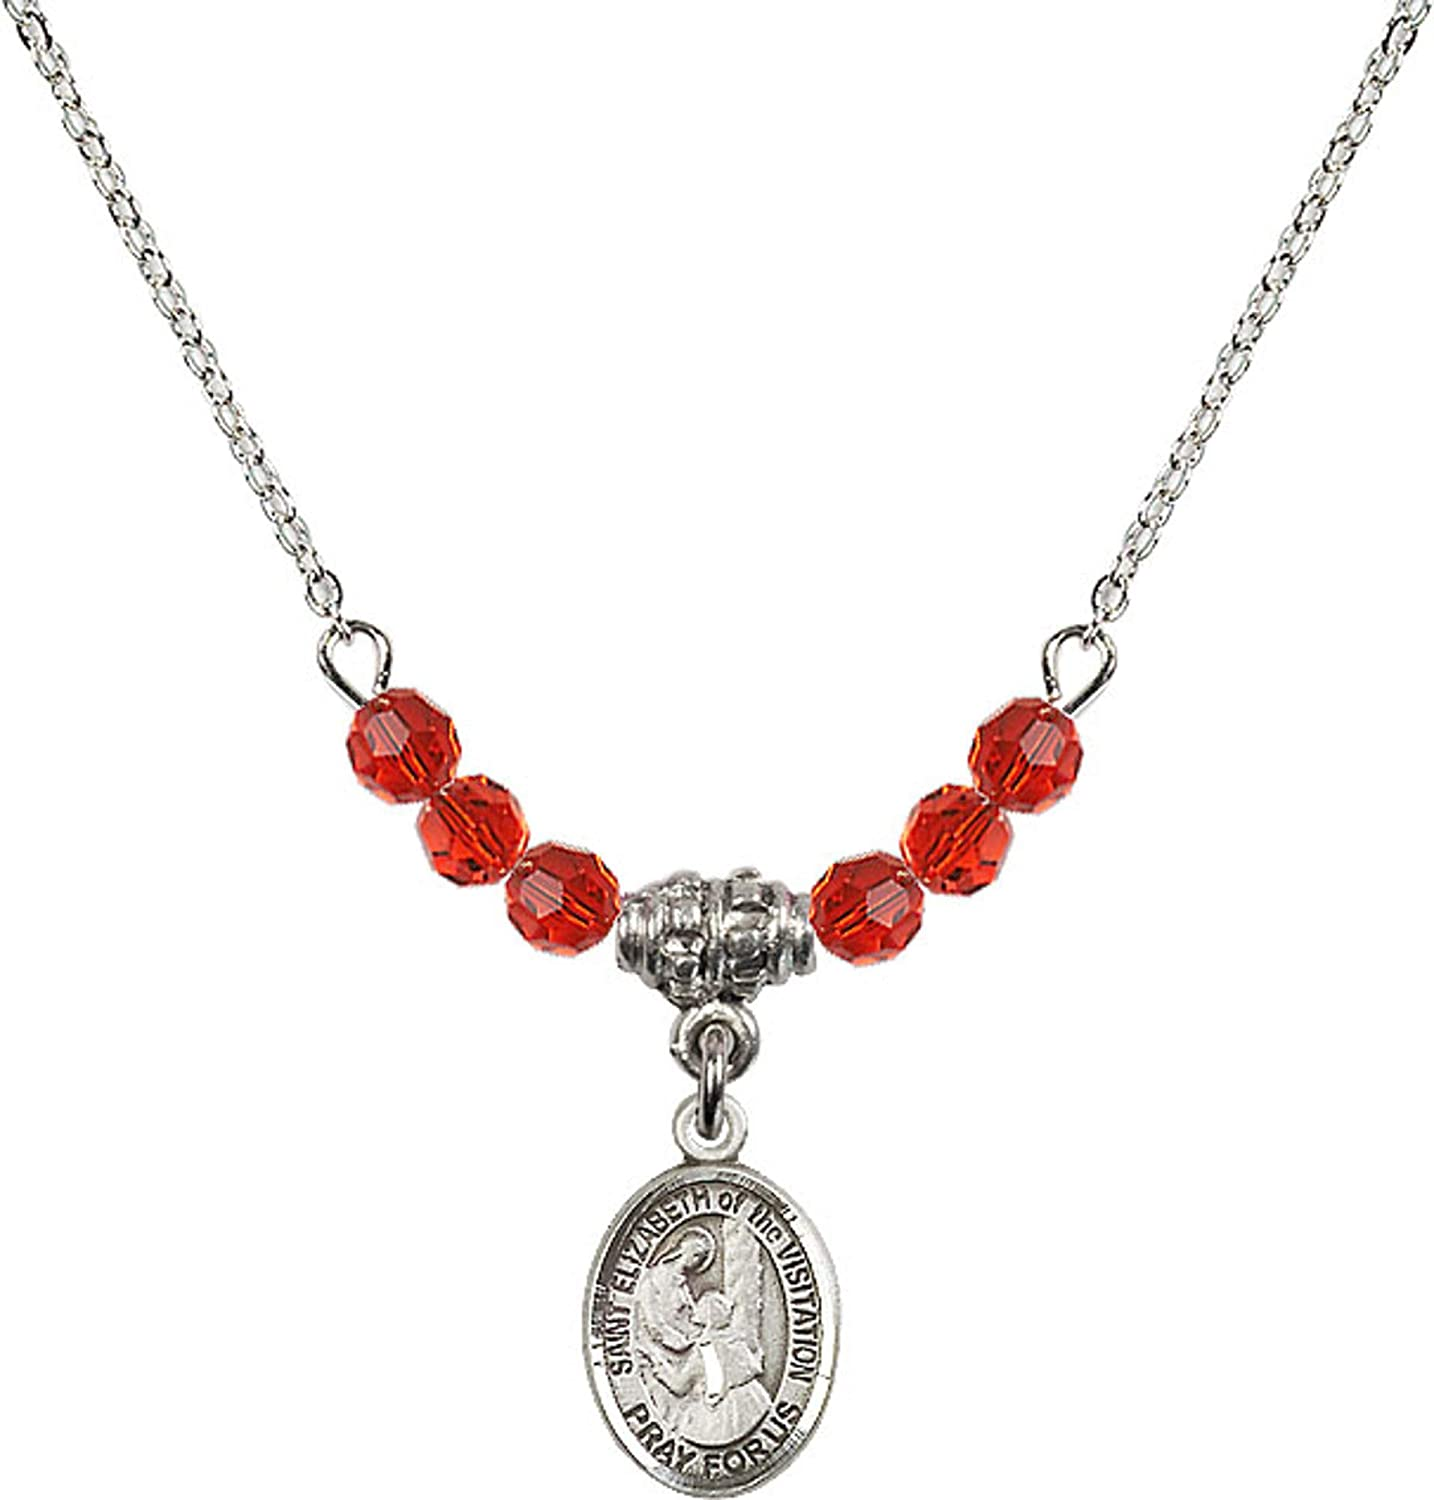 Bonyak Jewelry 18 Inch Rhodium Plated Necklace w// 4mm Red July Birth Month Stone Beads and Saint Elizabeth of The Visitation Charm